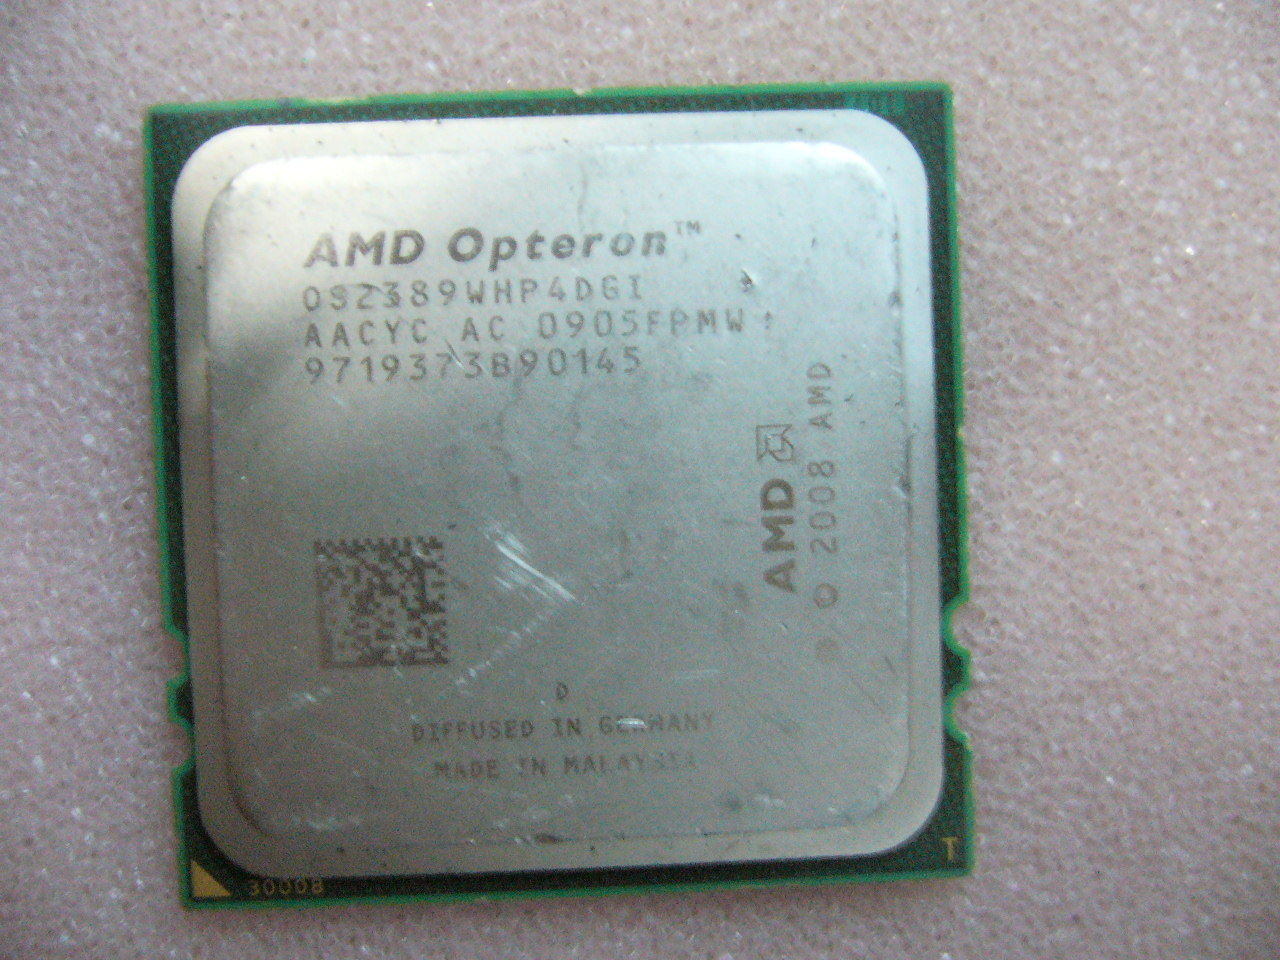 QTY 1x AMD Opteron 2389 2.9 GHz Quad-Core (OS2389WHP4DGI) CPU Socket F 1207